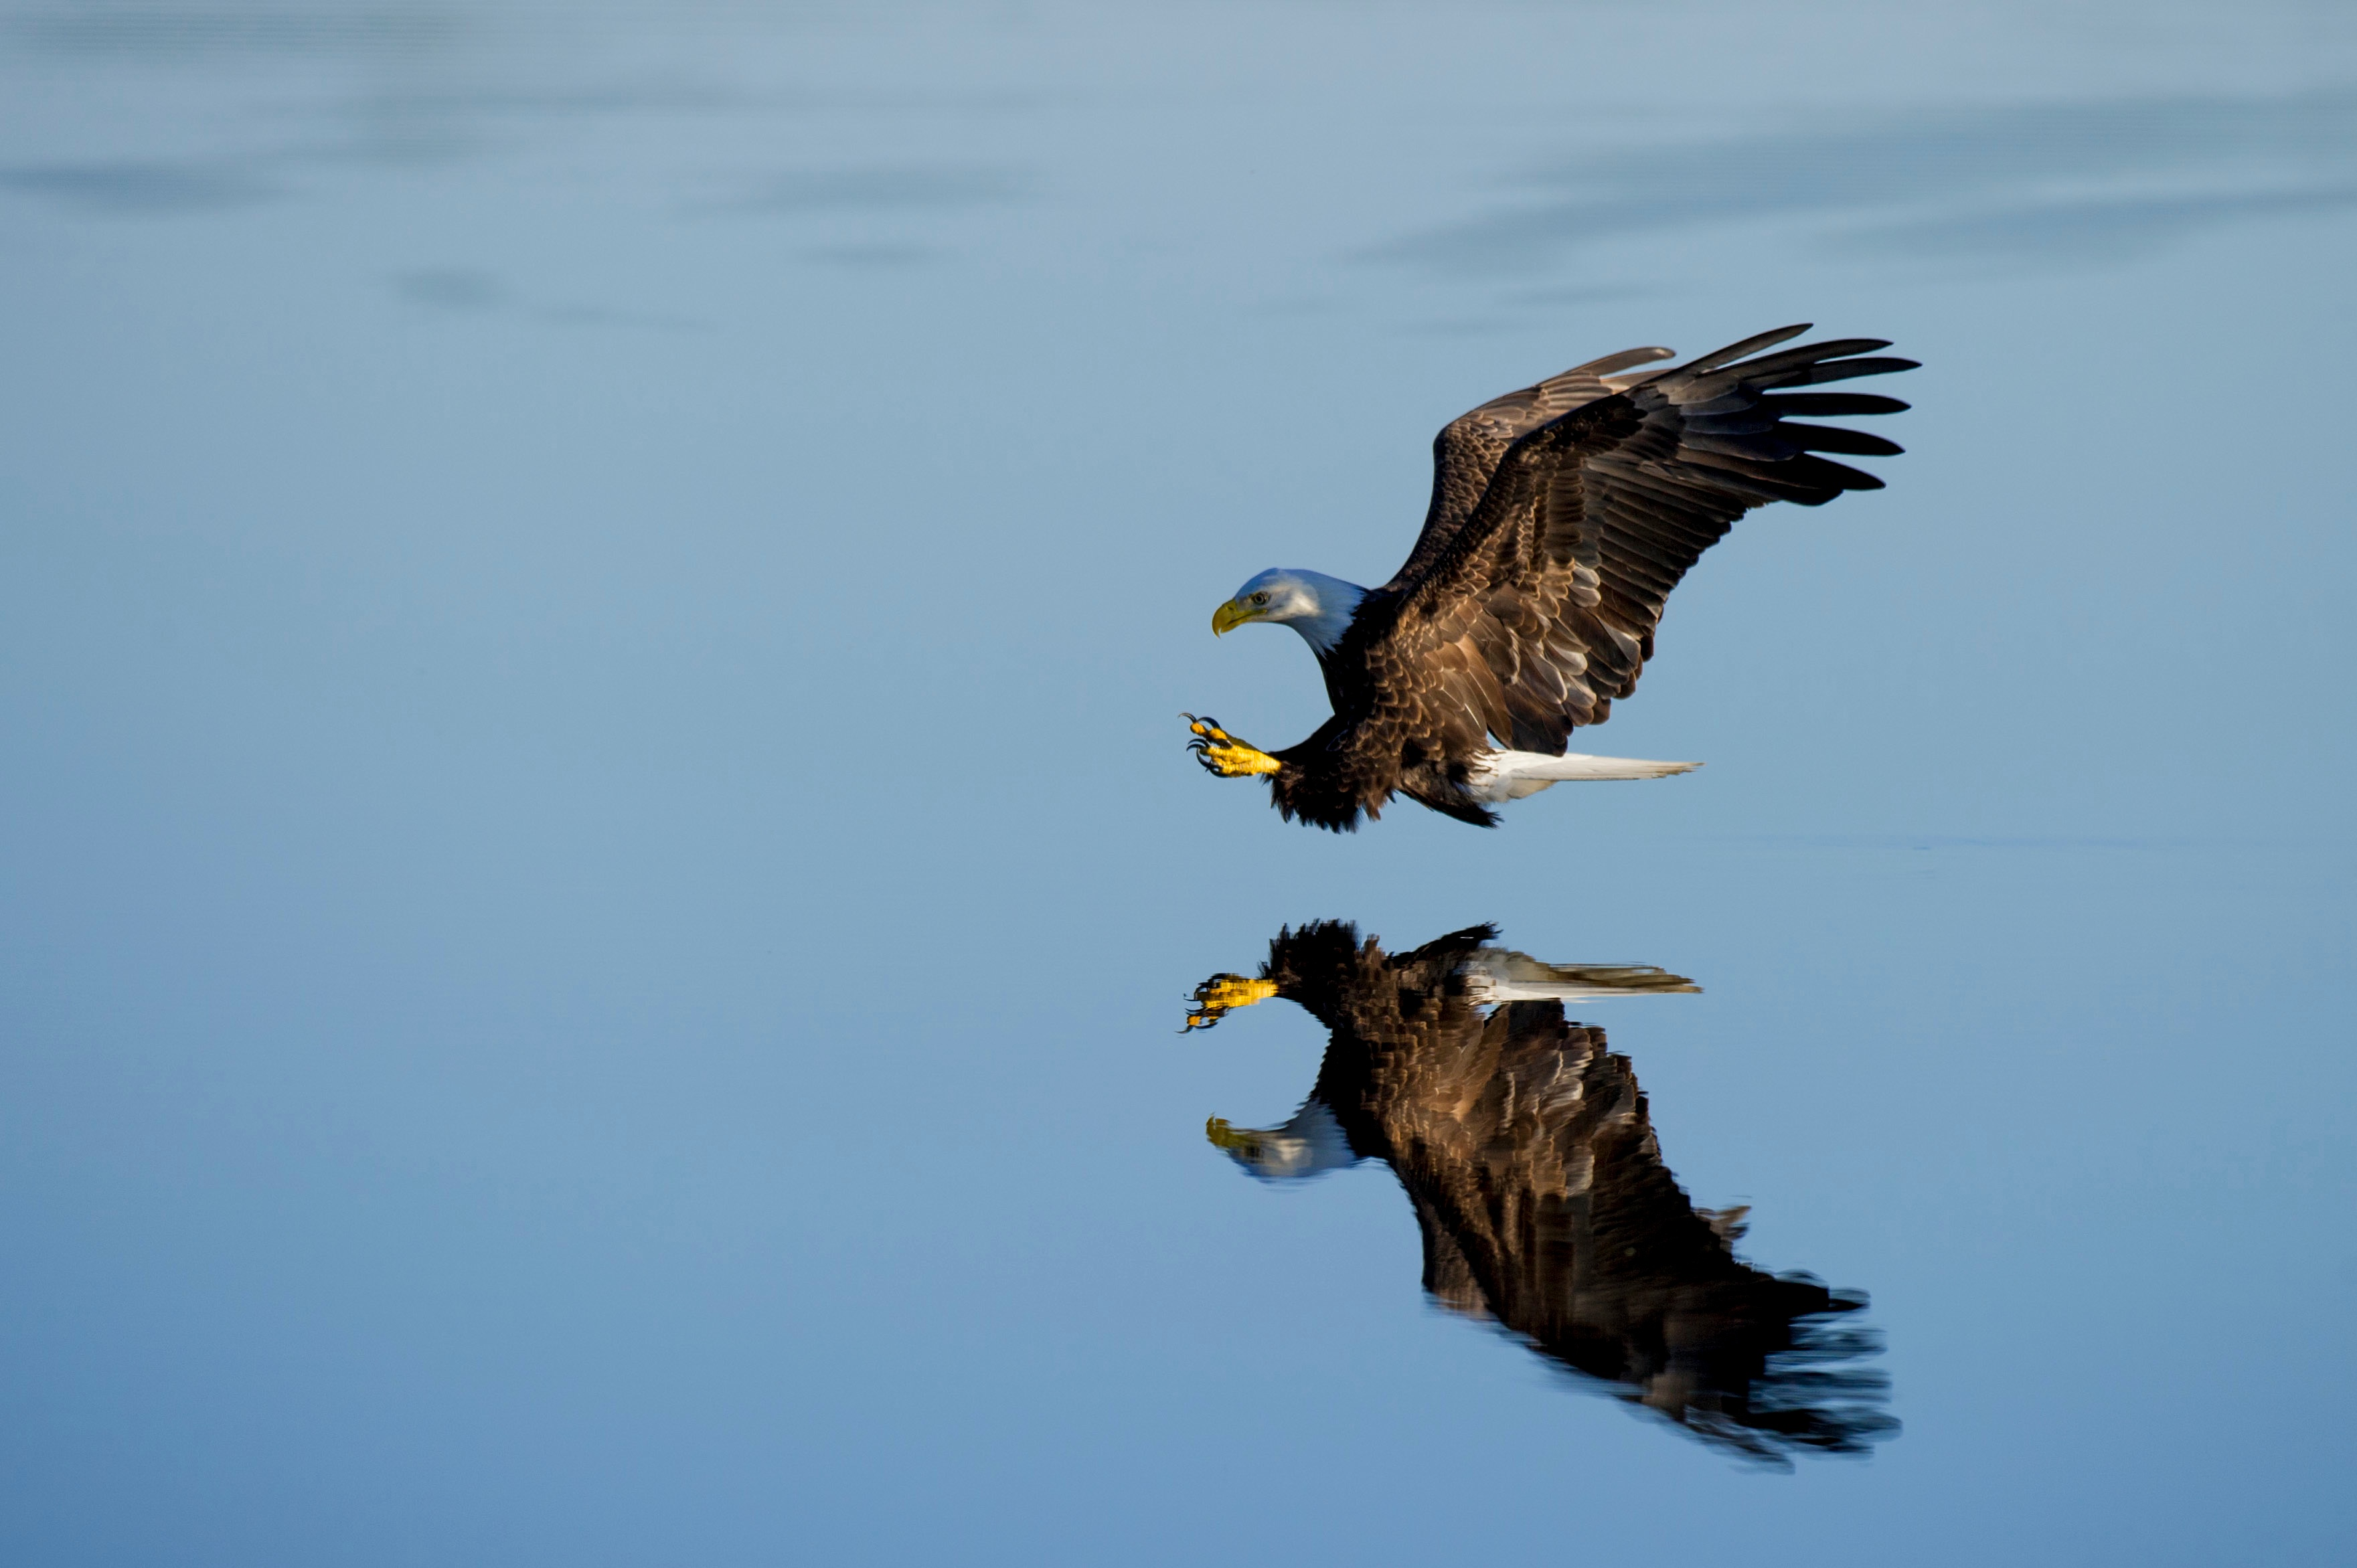 example image of eagle in flight using a fast shutter speed